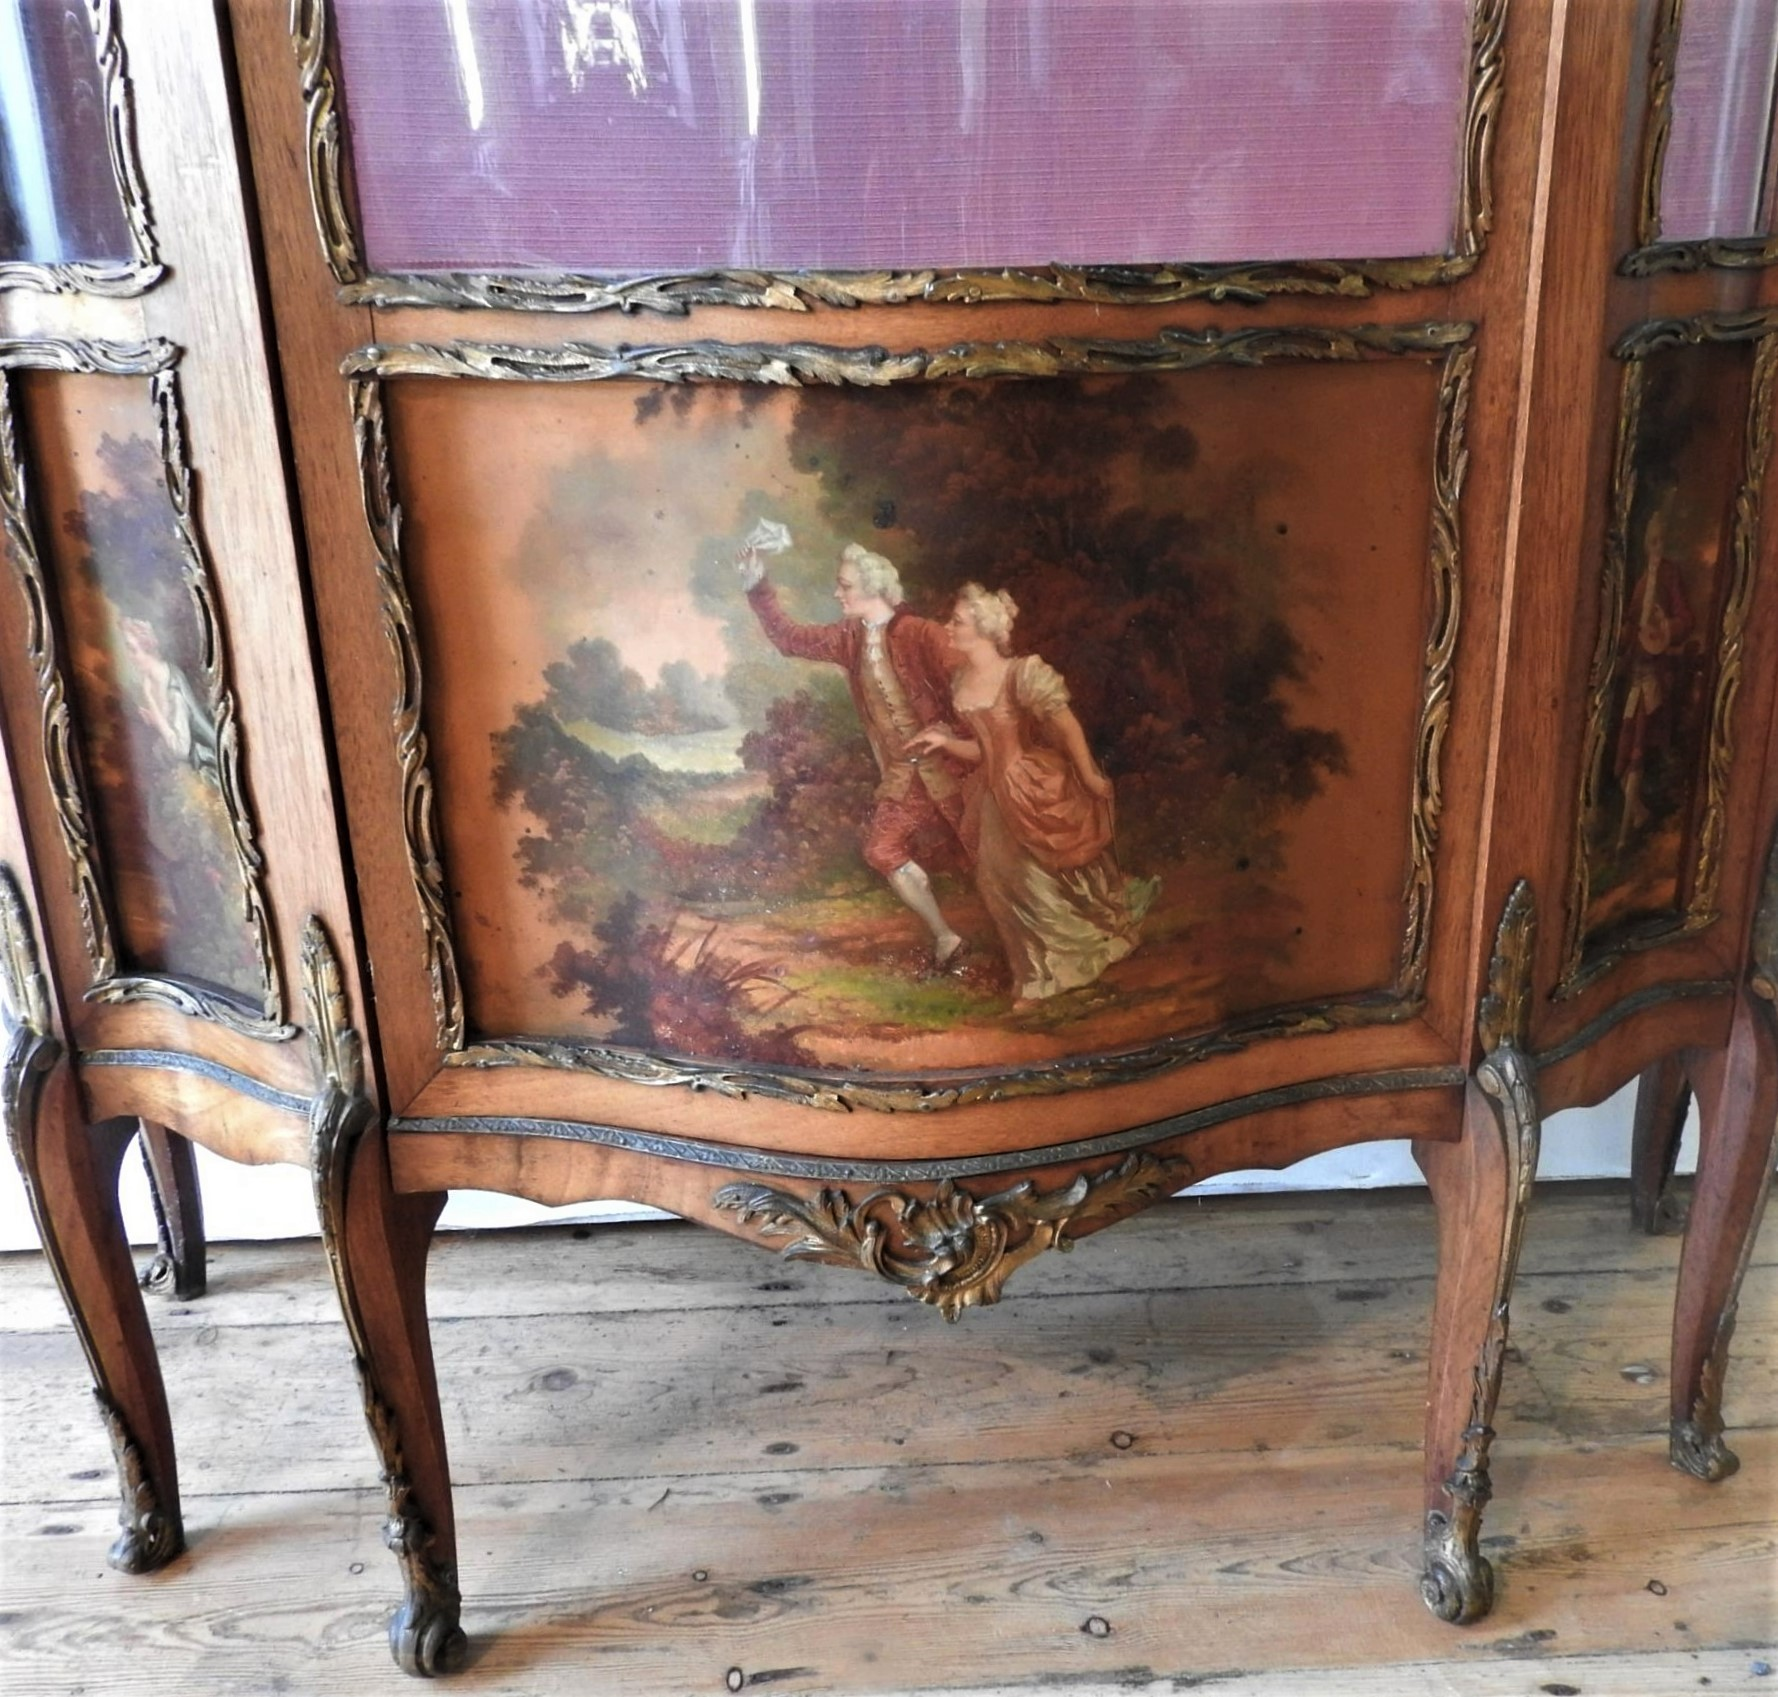 AN ORNATE 20TH CENTURY LOUIS XV STYLE WALNUT VENEER VETRINE CABINET, the serpentine fronted - Image 2 of 4